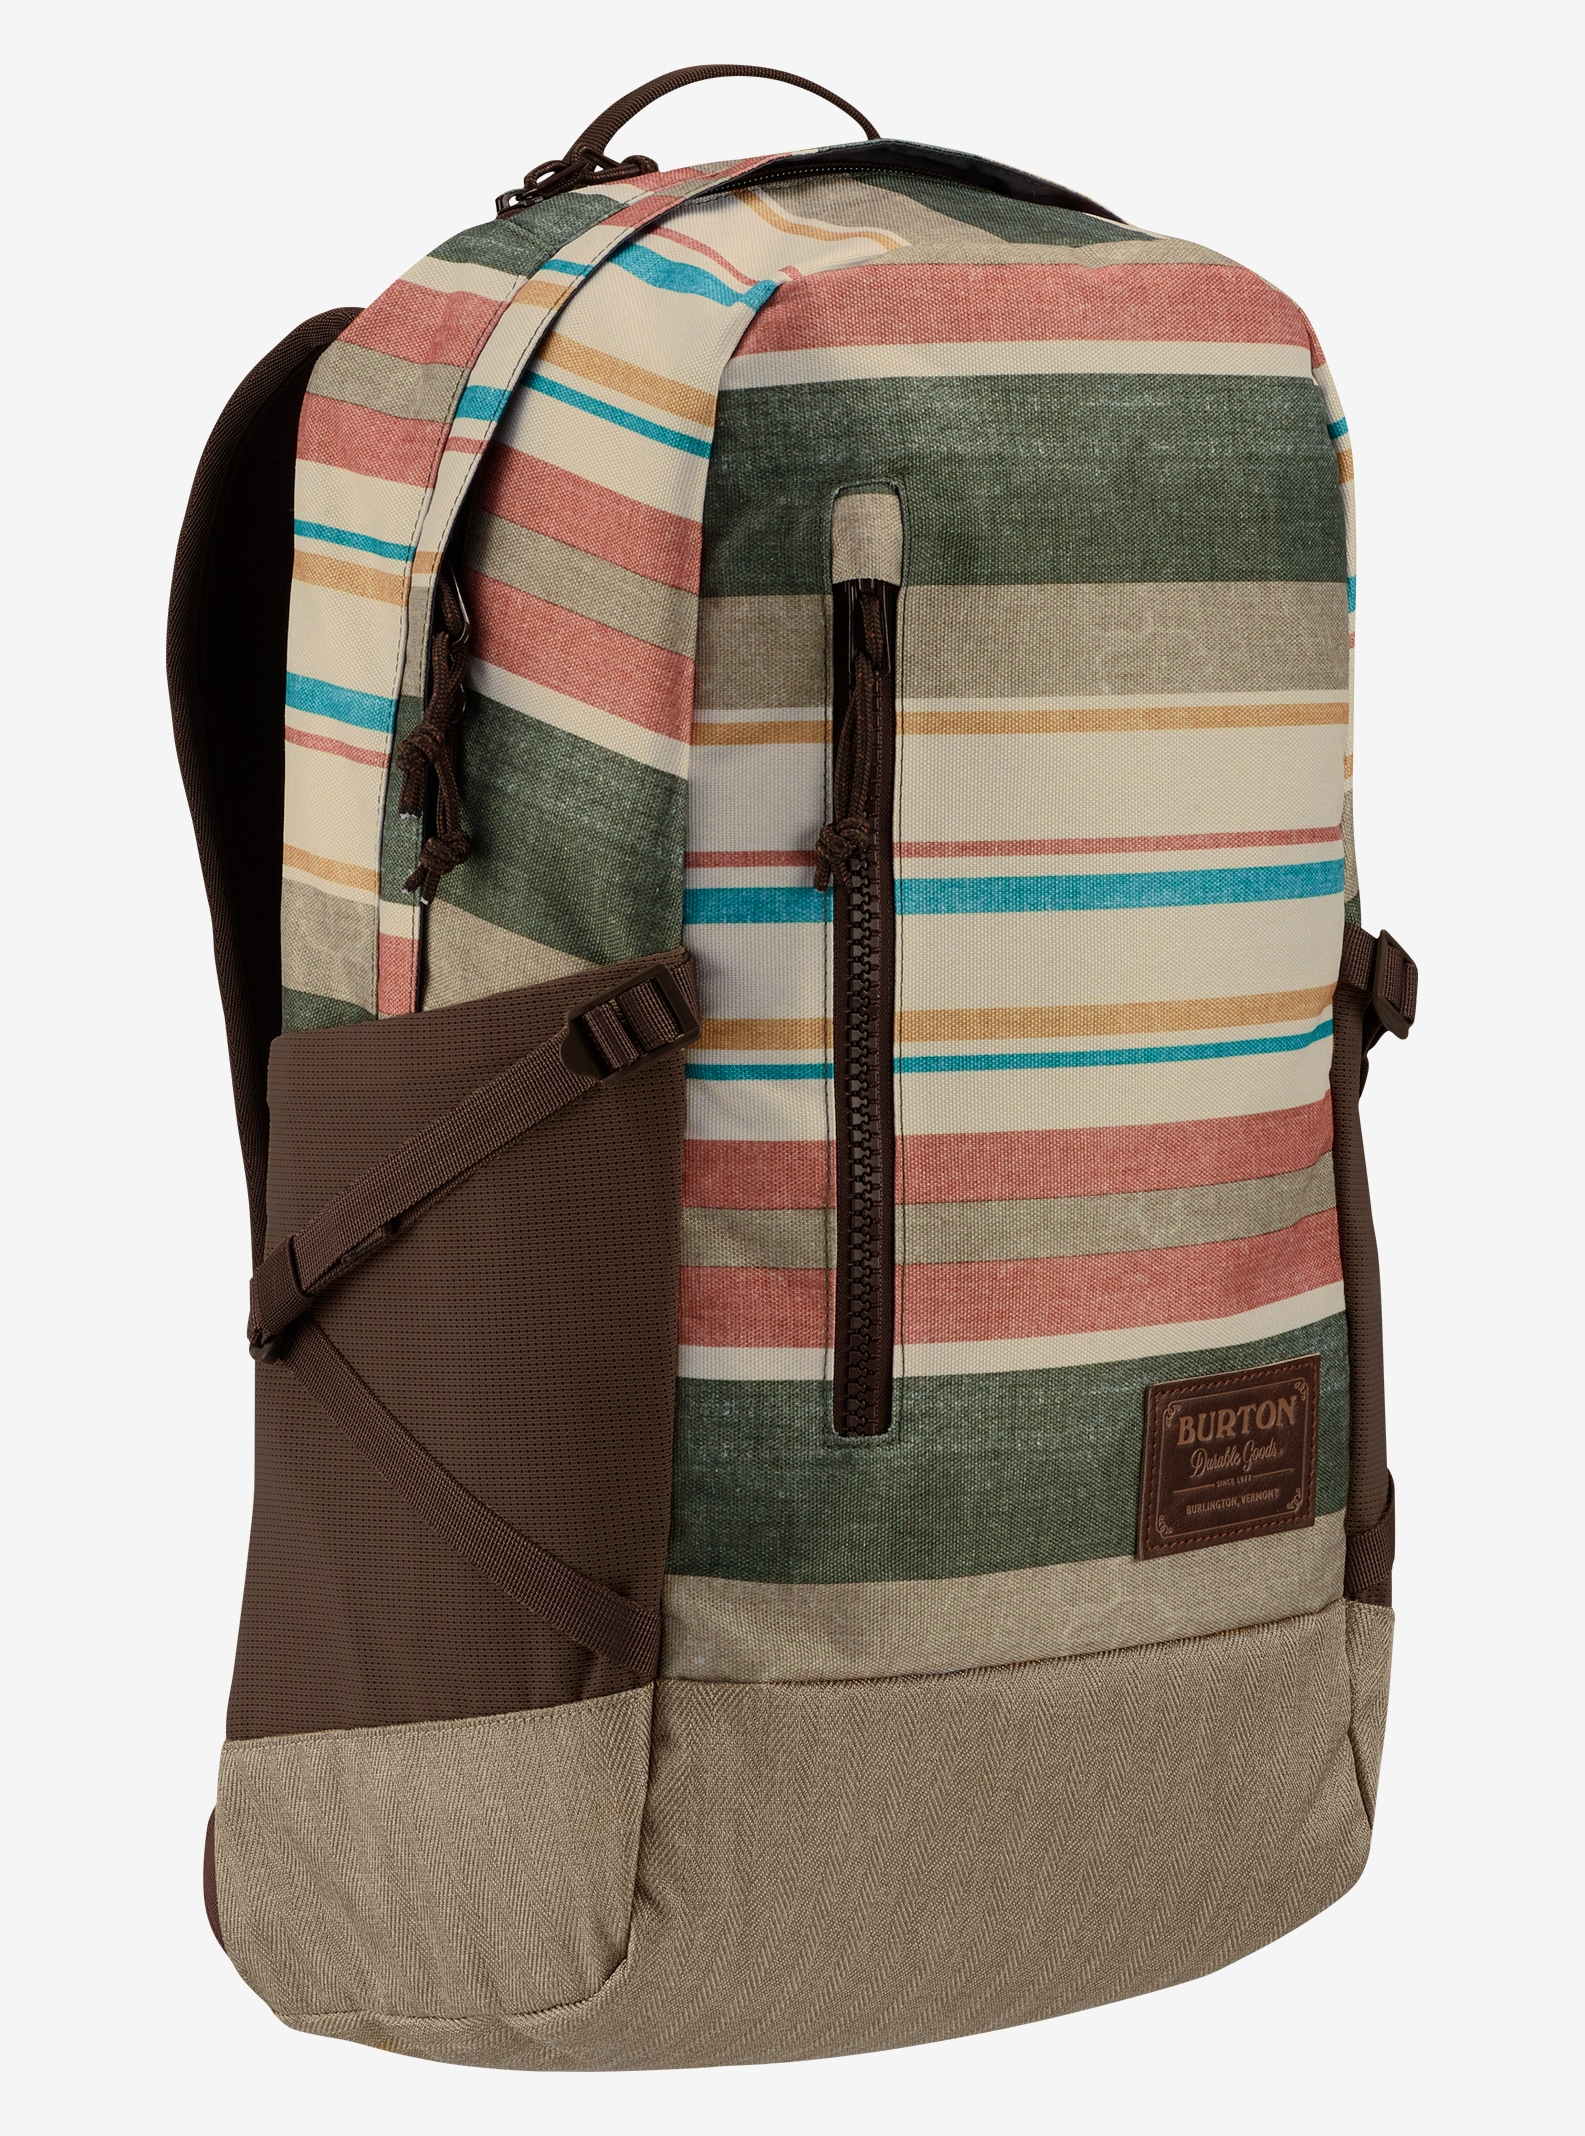 Burton Prospect Backpack shown in Rancher Stripe Print